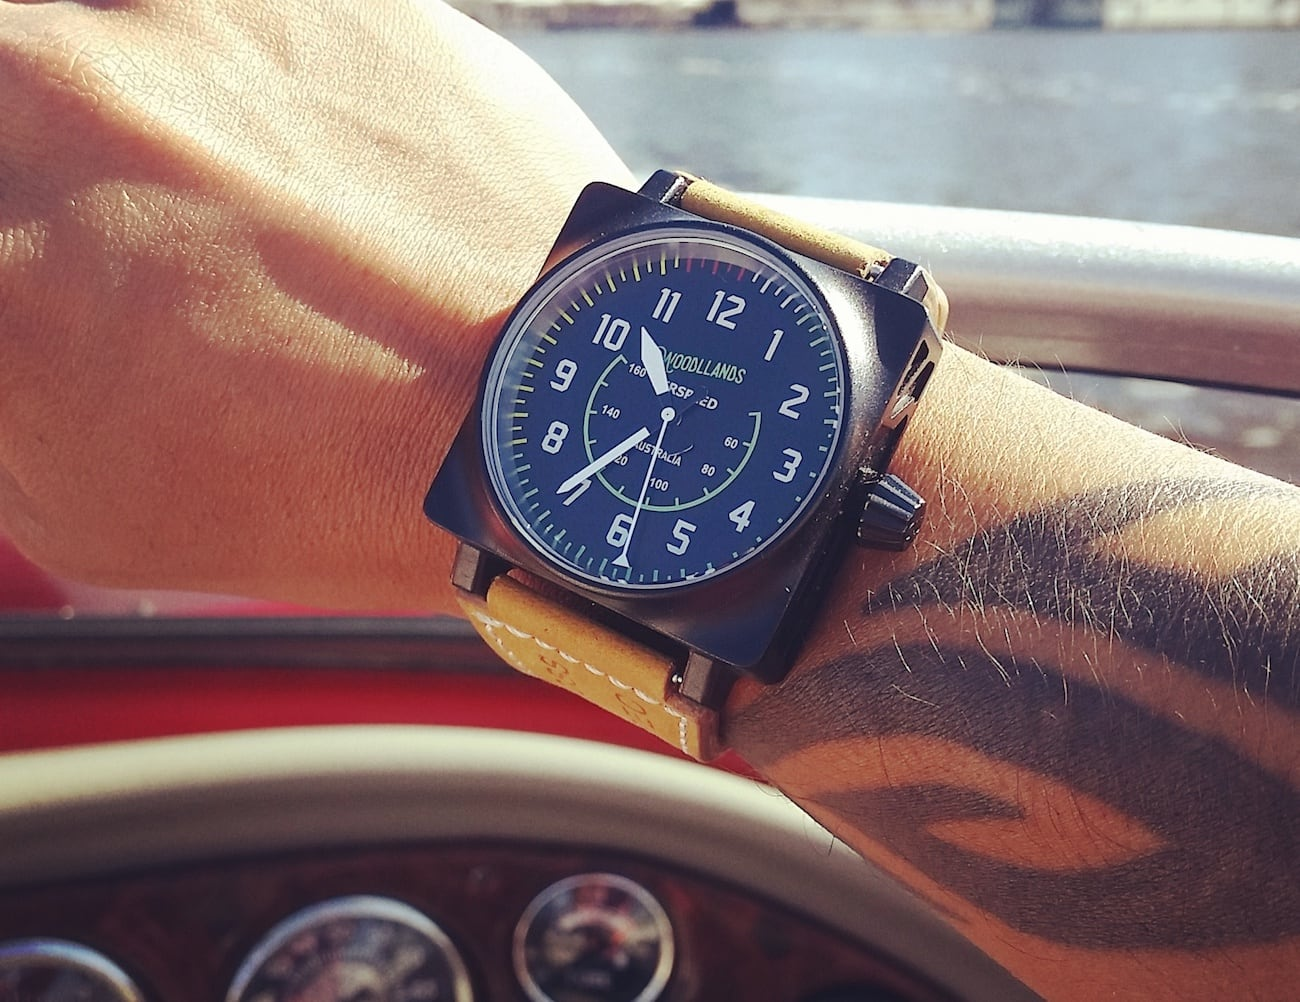 Woodllands Aviation Collection Handcrafted Watches